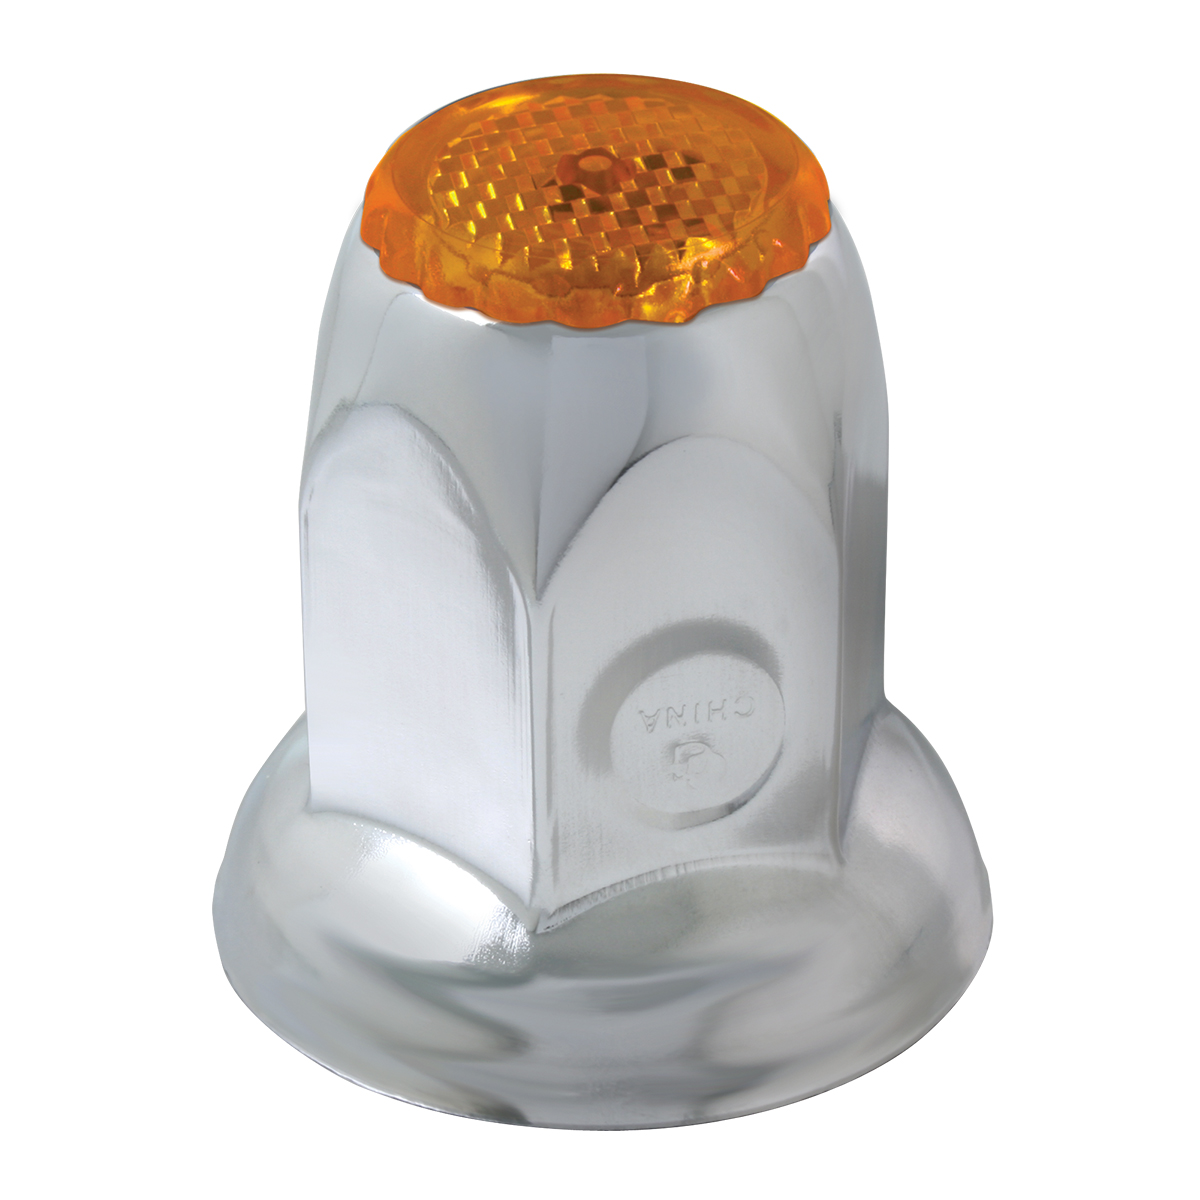 Classic Stainless Steel 33mm Push-On Lug Nut Cover w/ Amber Reflector